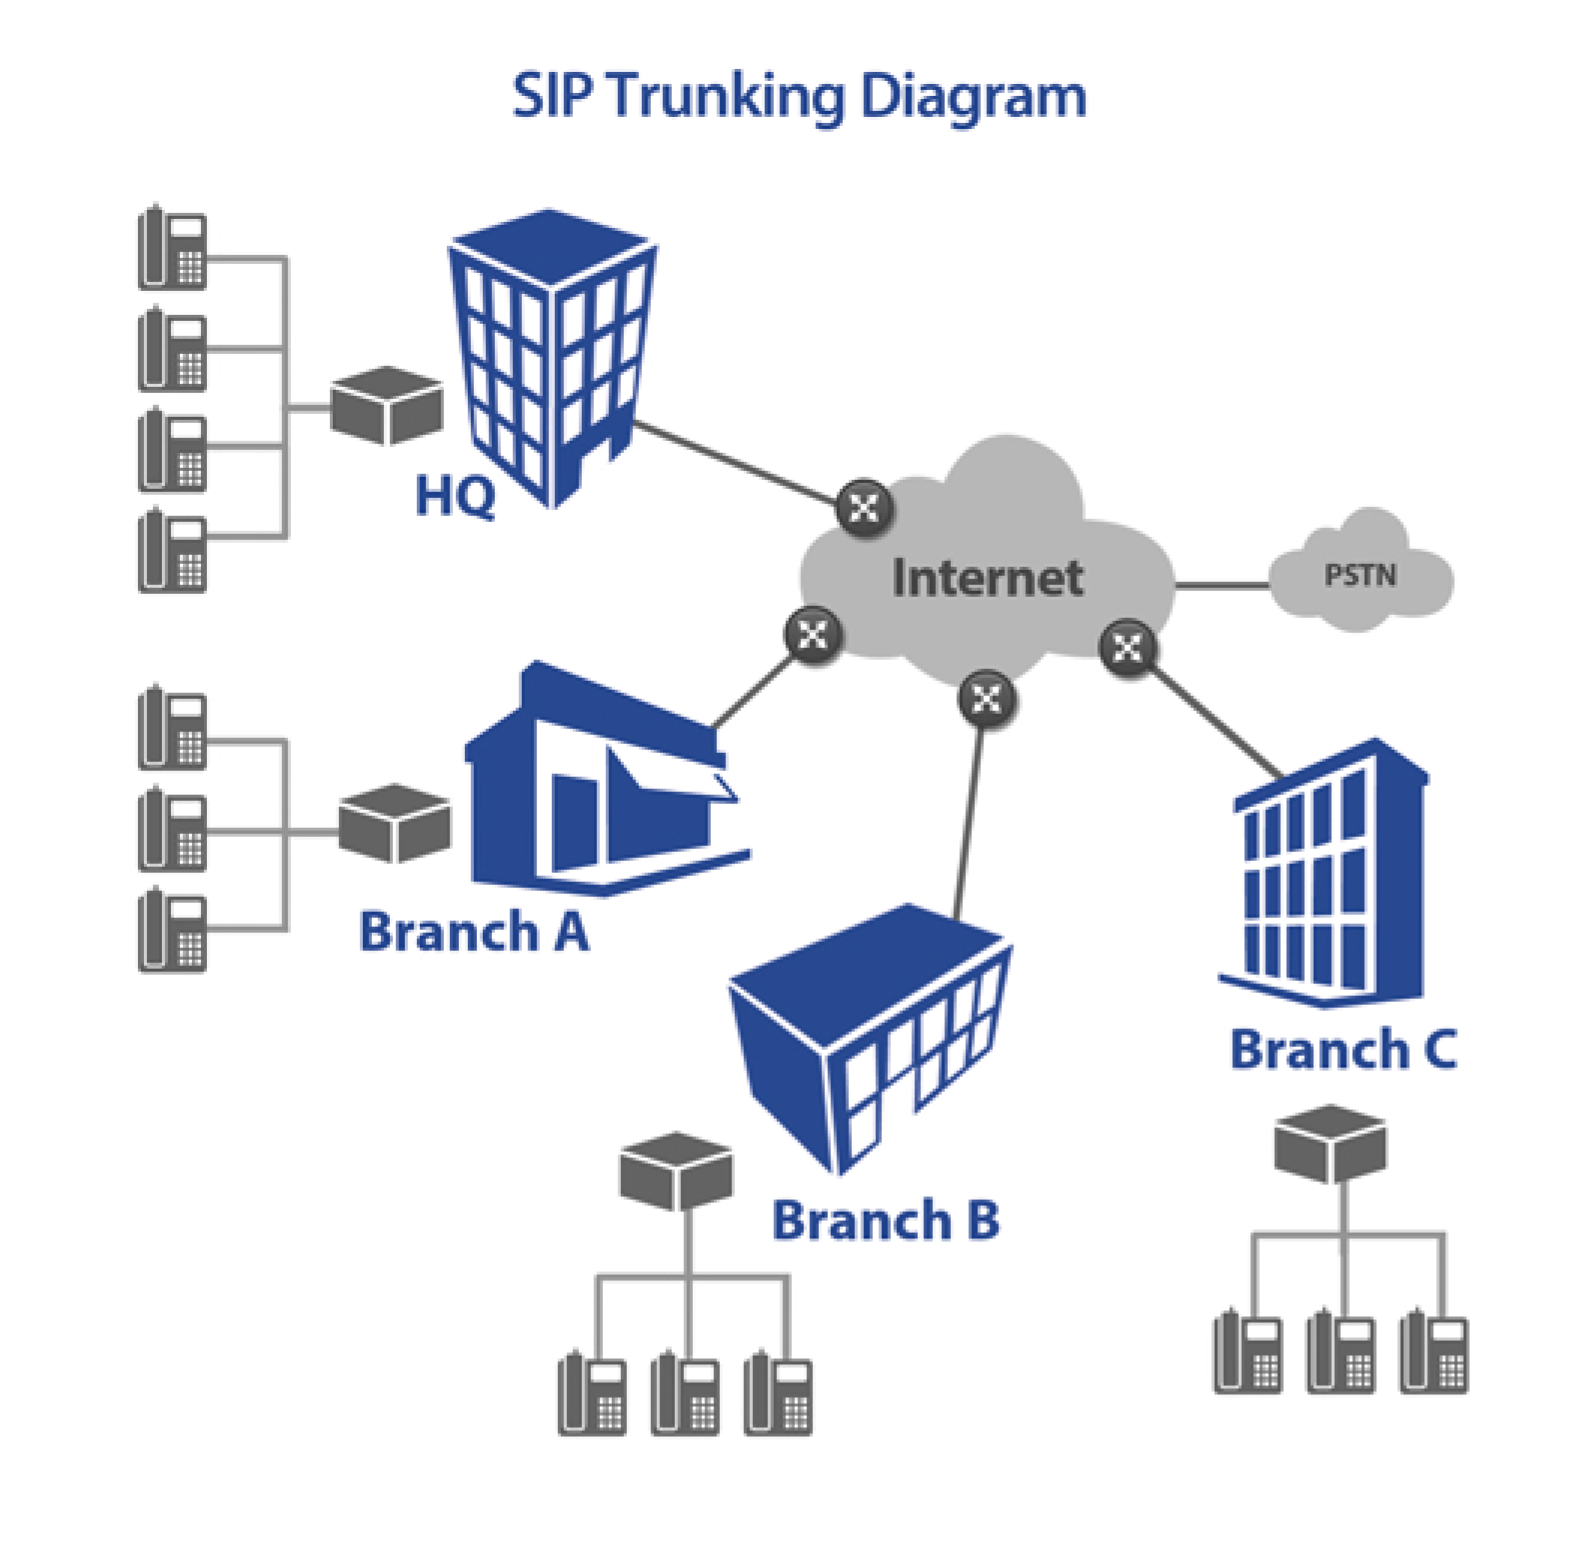 telephone network diagram skull unlabeled first communications sip trunking